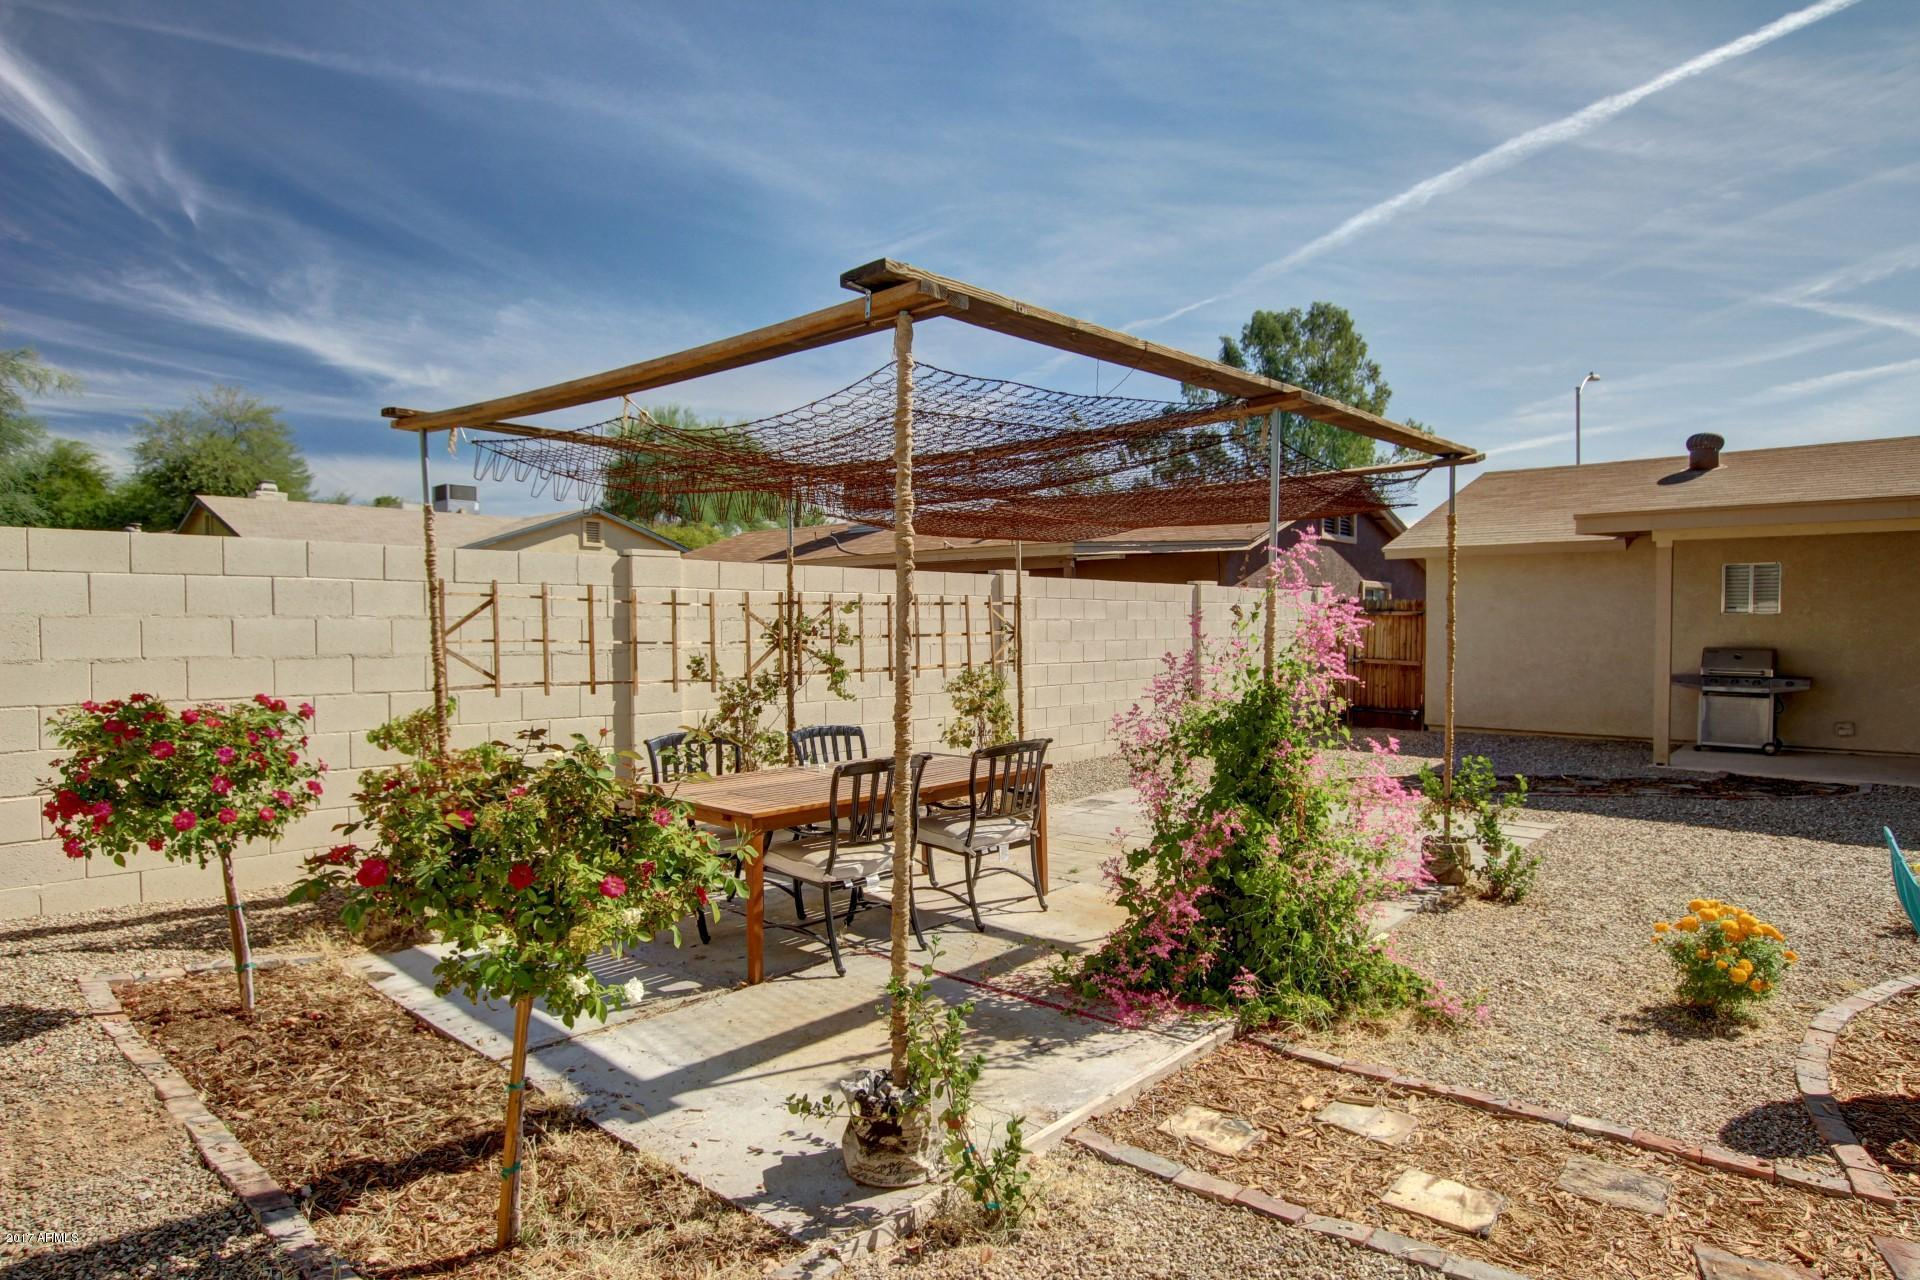 Affordable gem of a home in Phoenix